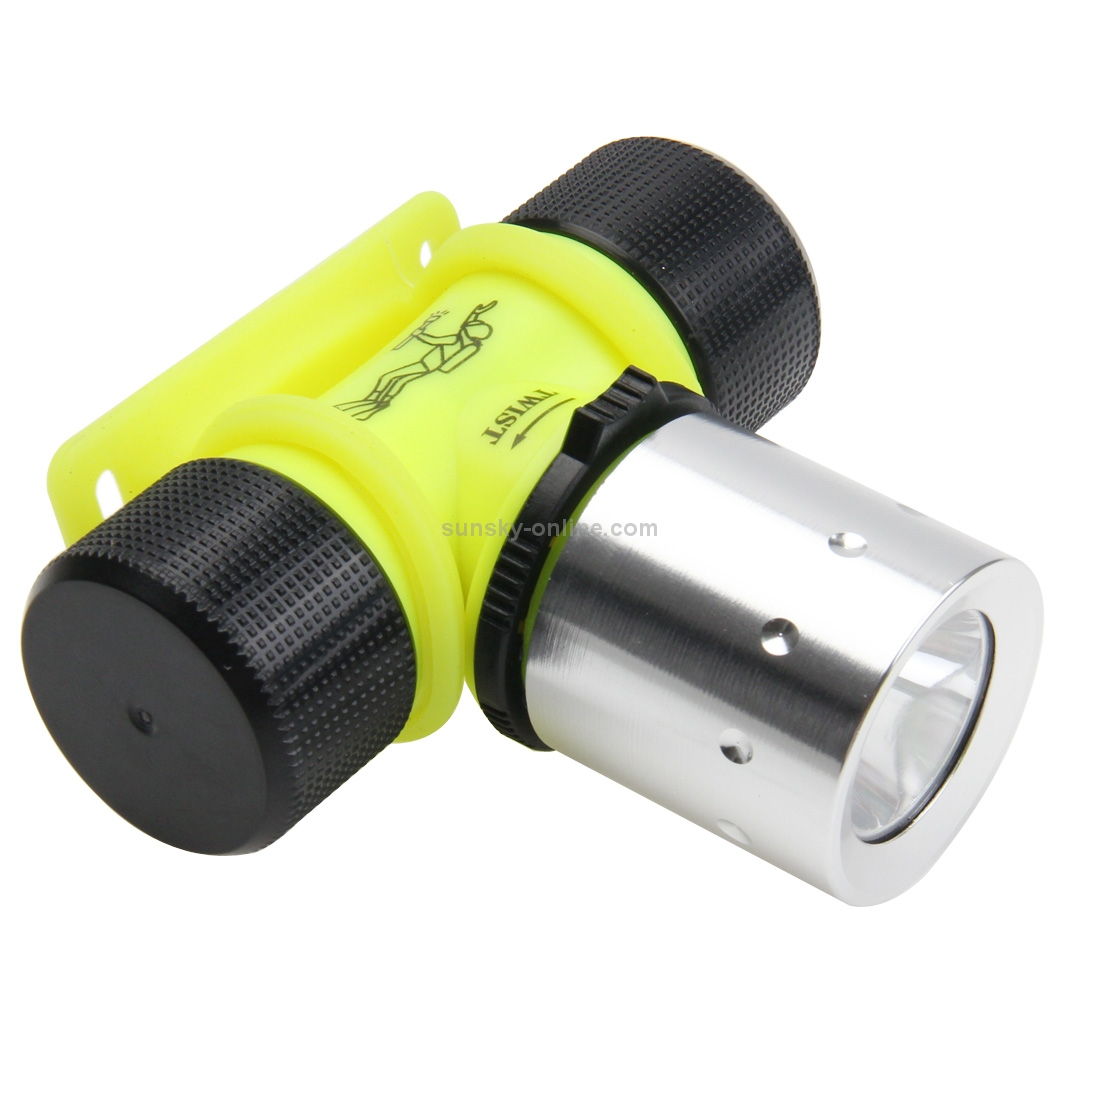 About LED Flashlight